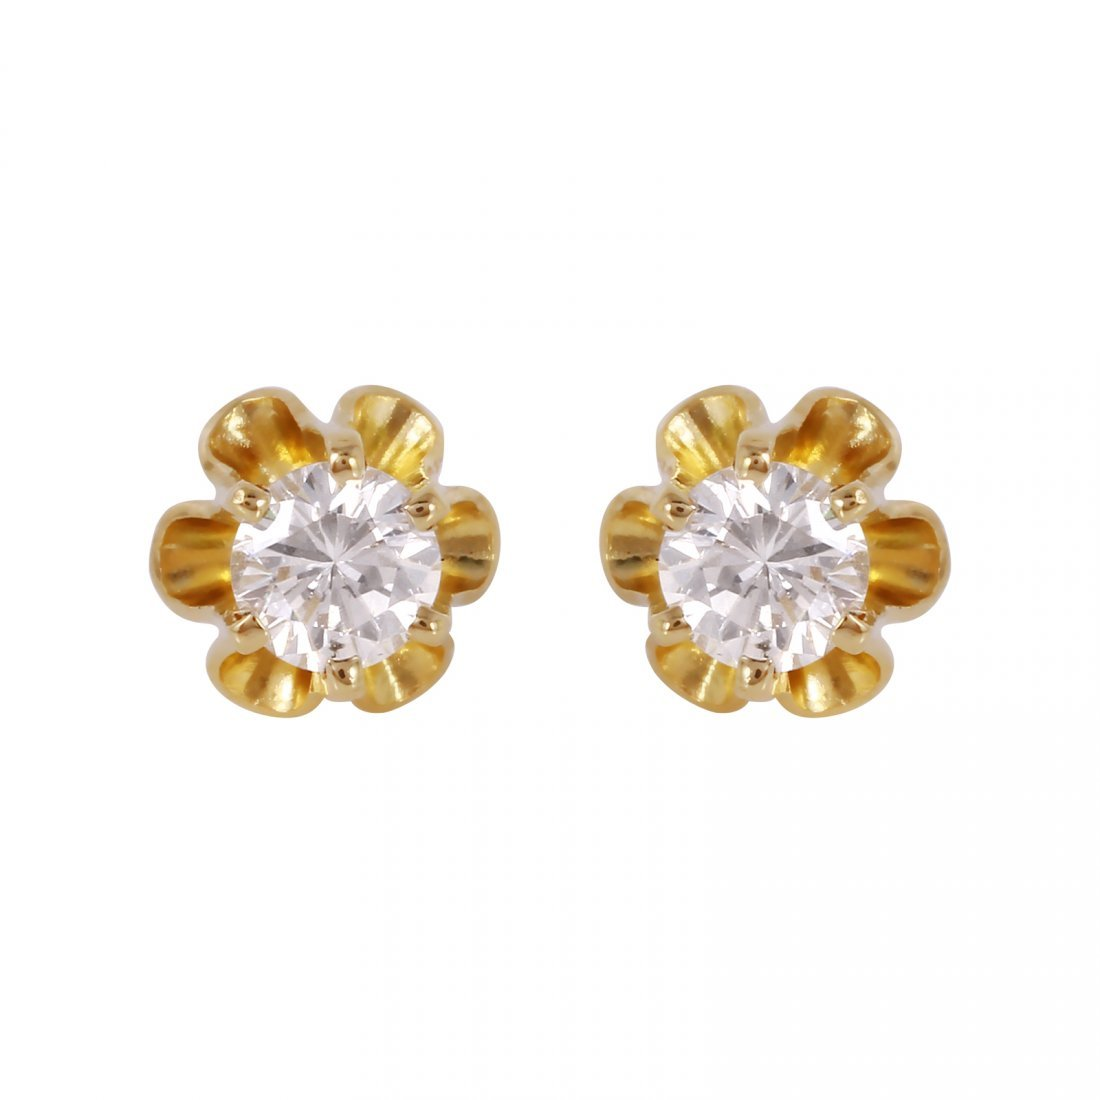 These flower stud earrings feature two round brilliant